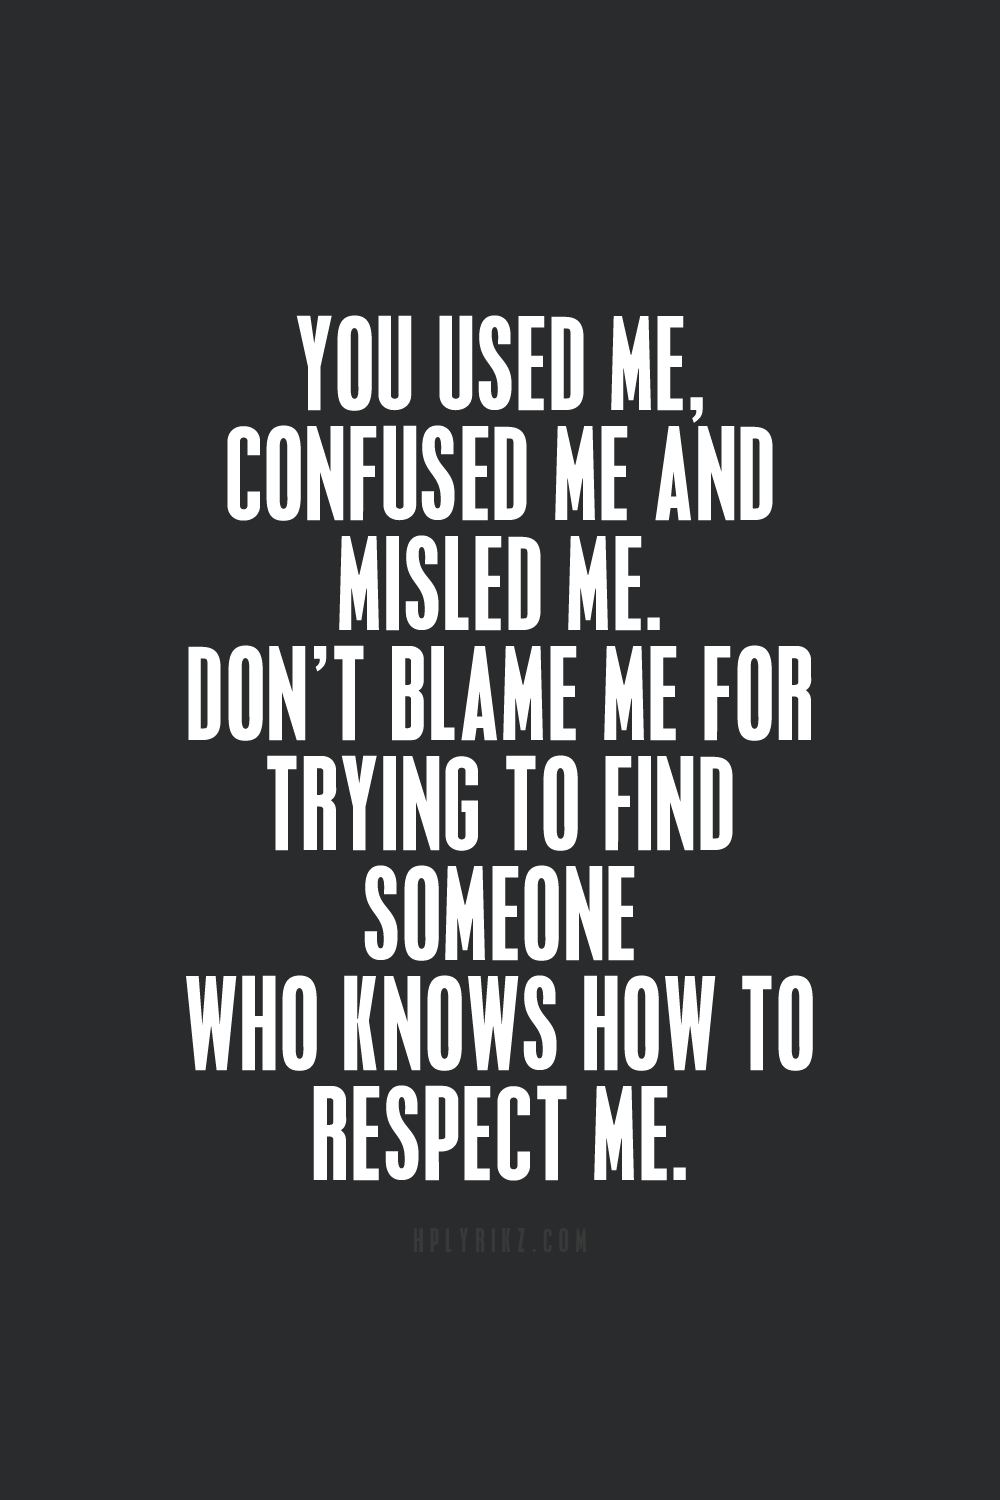 You used me, confused me, and misled me. Don't blame me for trying ...